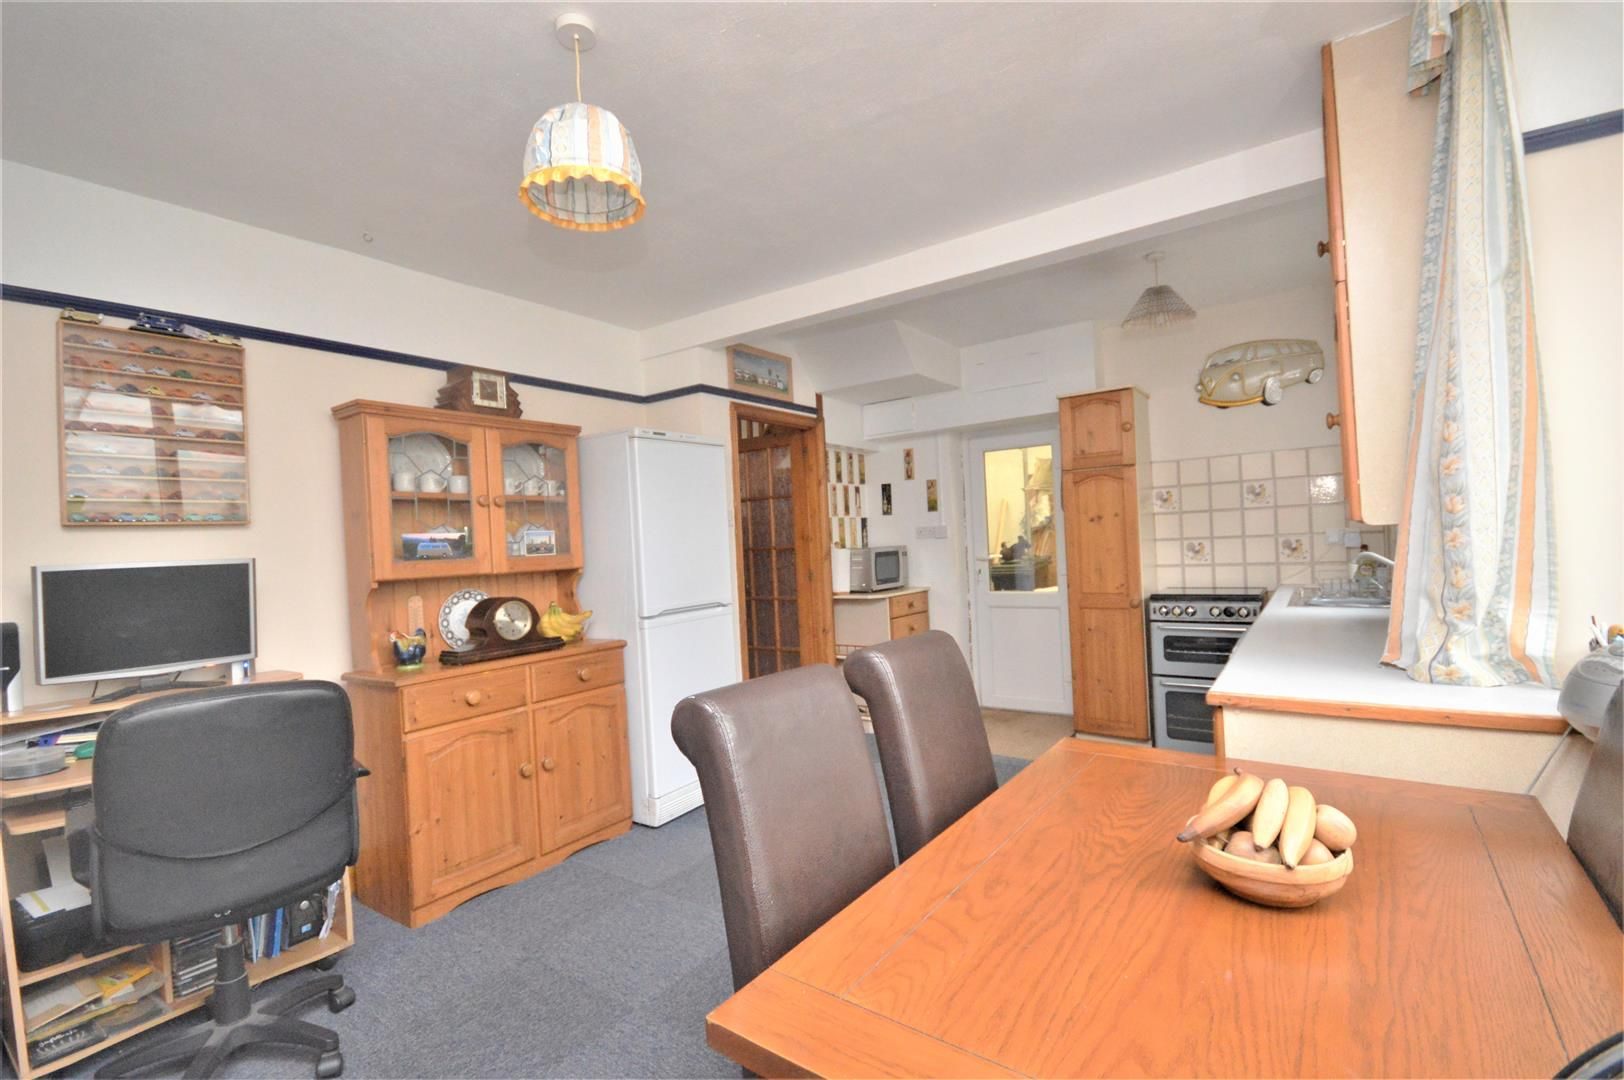 3 bed semi-detached for sale in Hereford  - Property Image 3